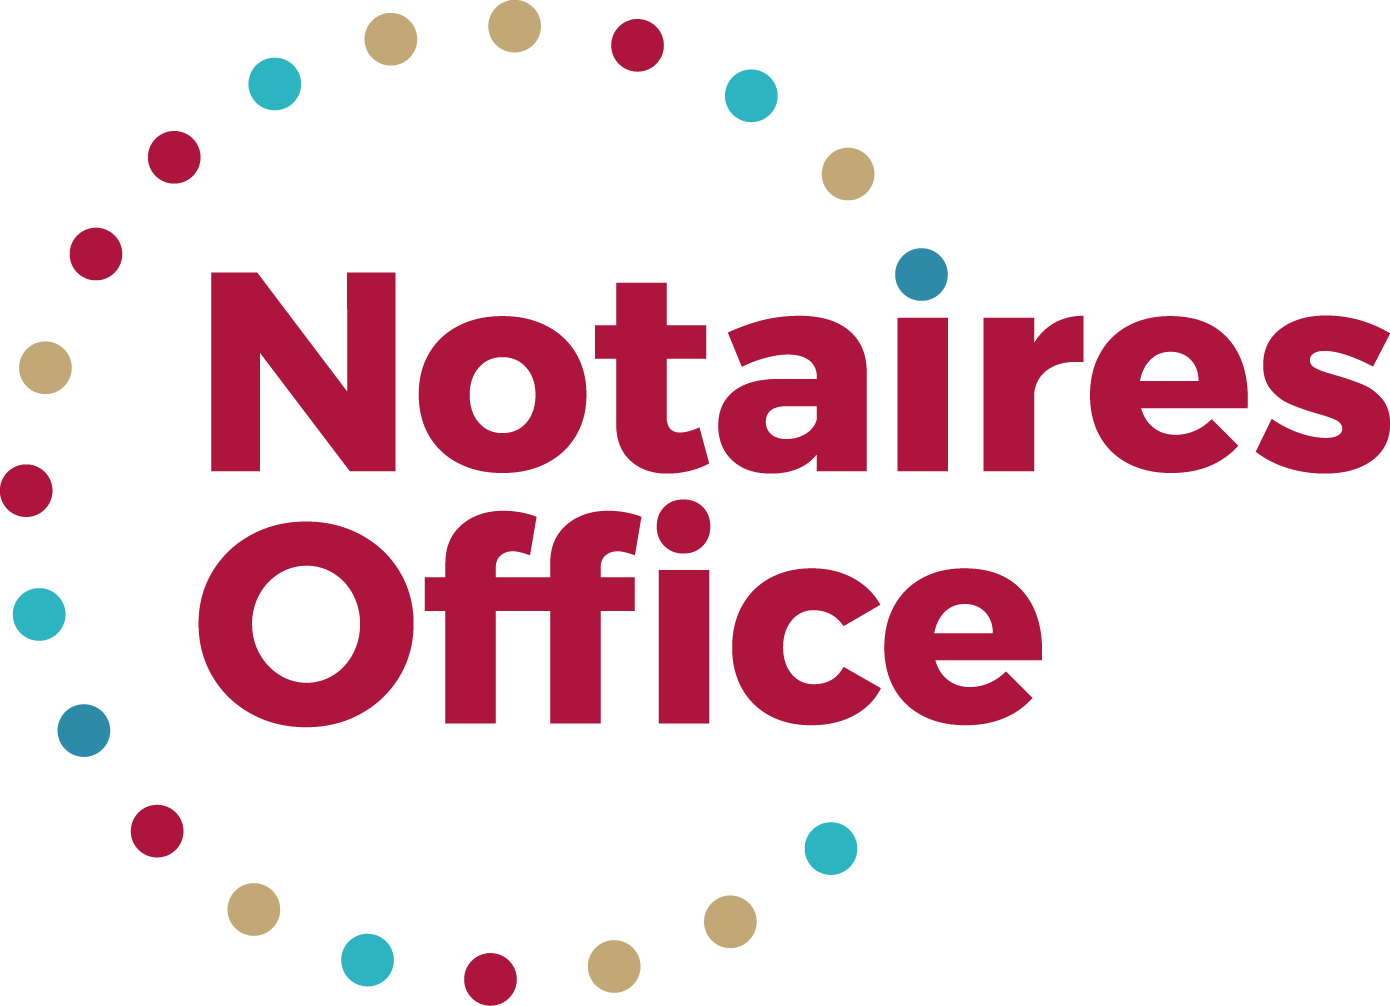 Notaires Office